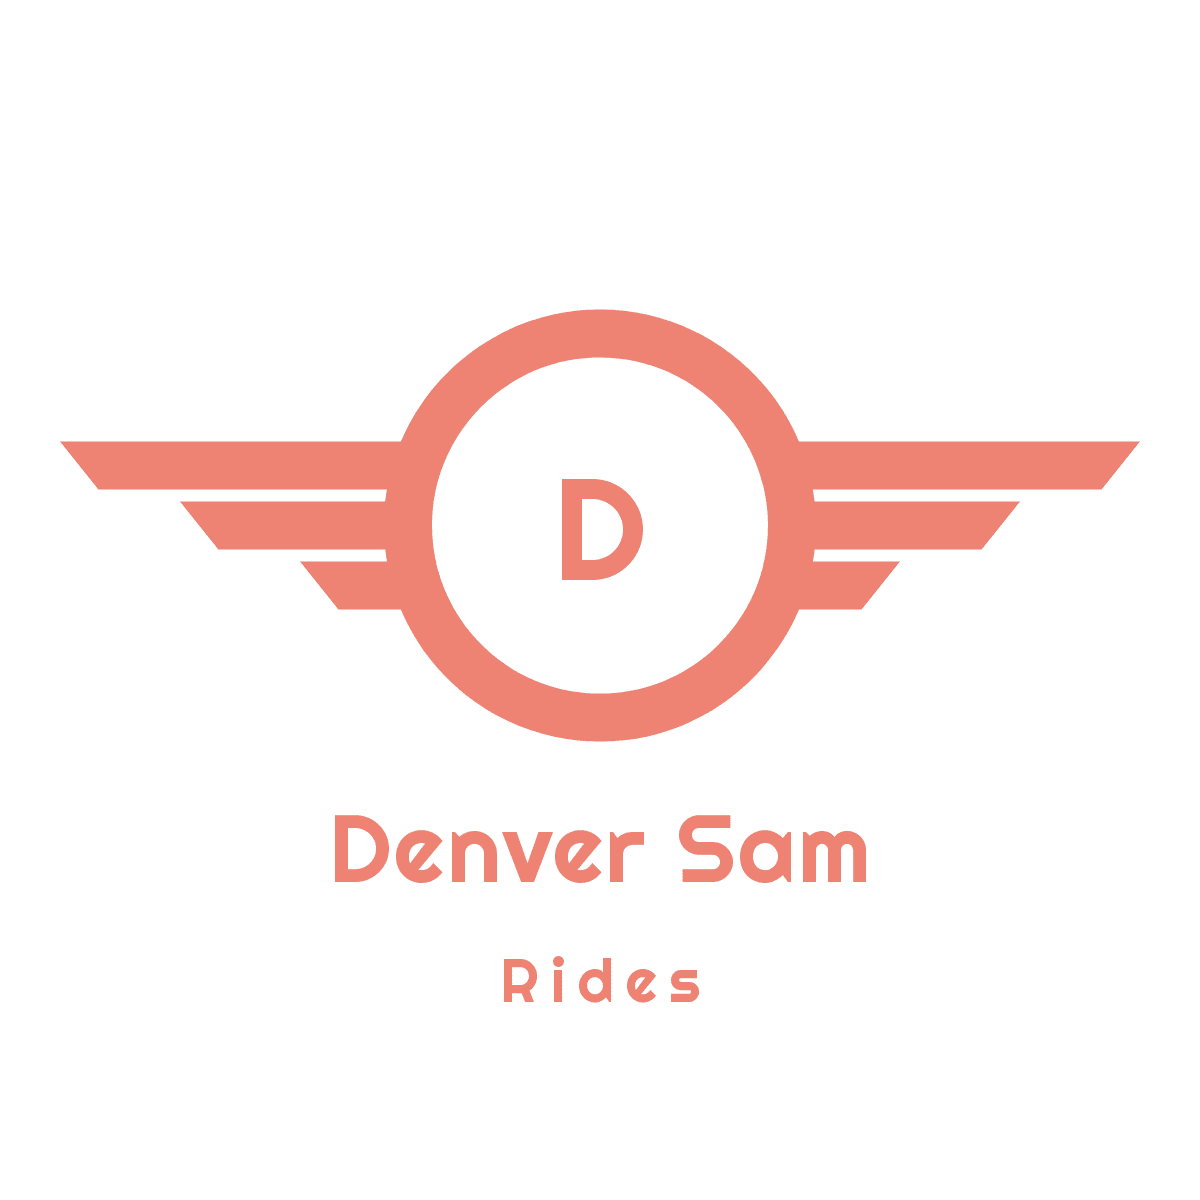 Denver Sam SUV Service